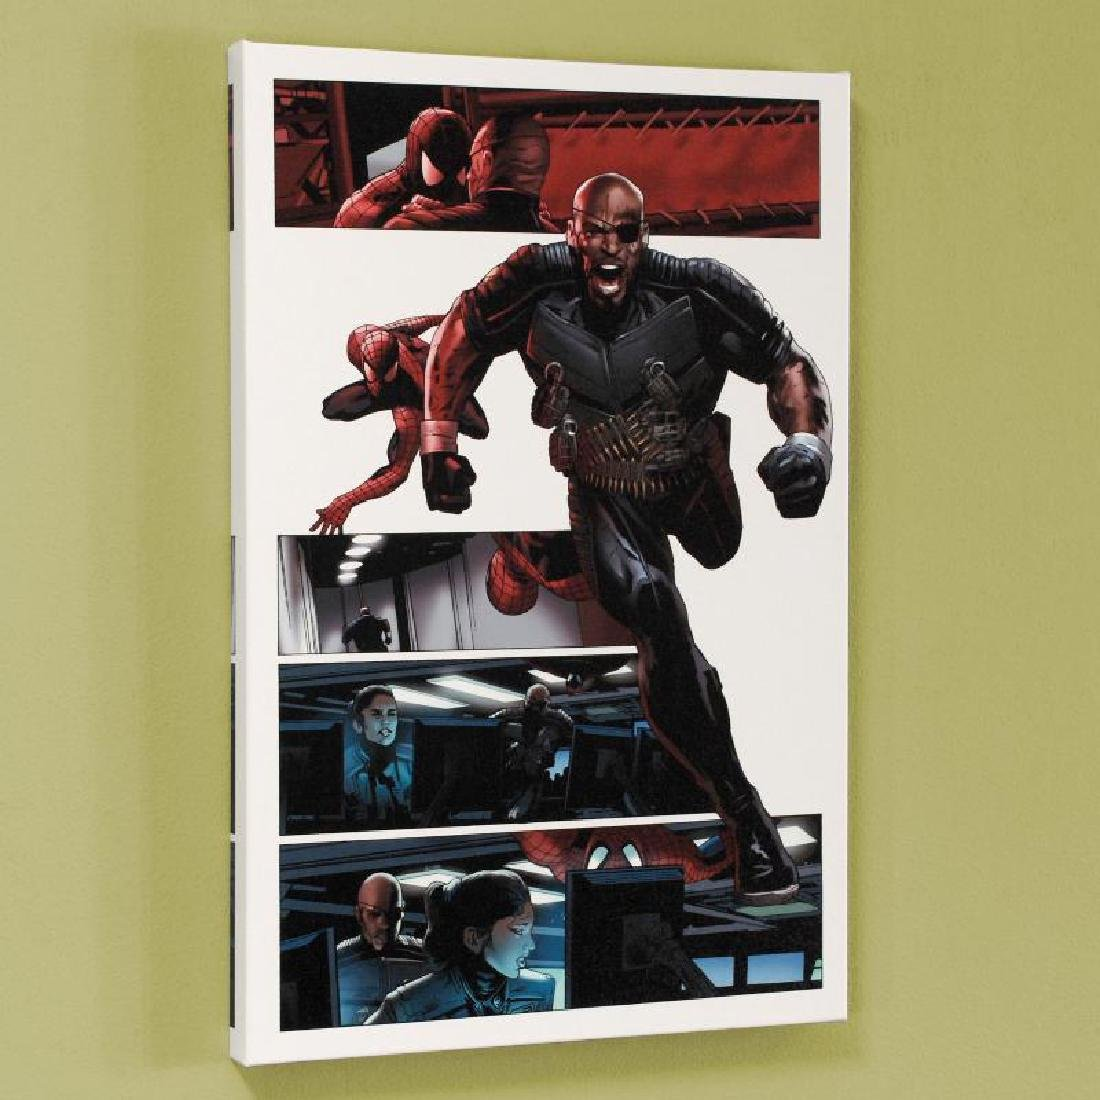 Ultimate Power #6 Limited Edition Giclee on Canvas by